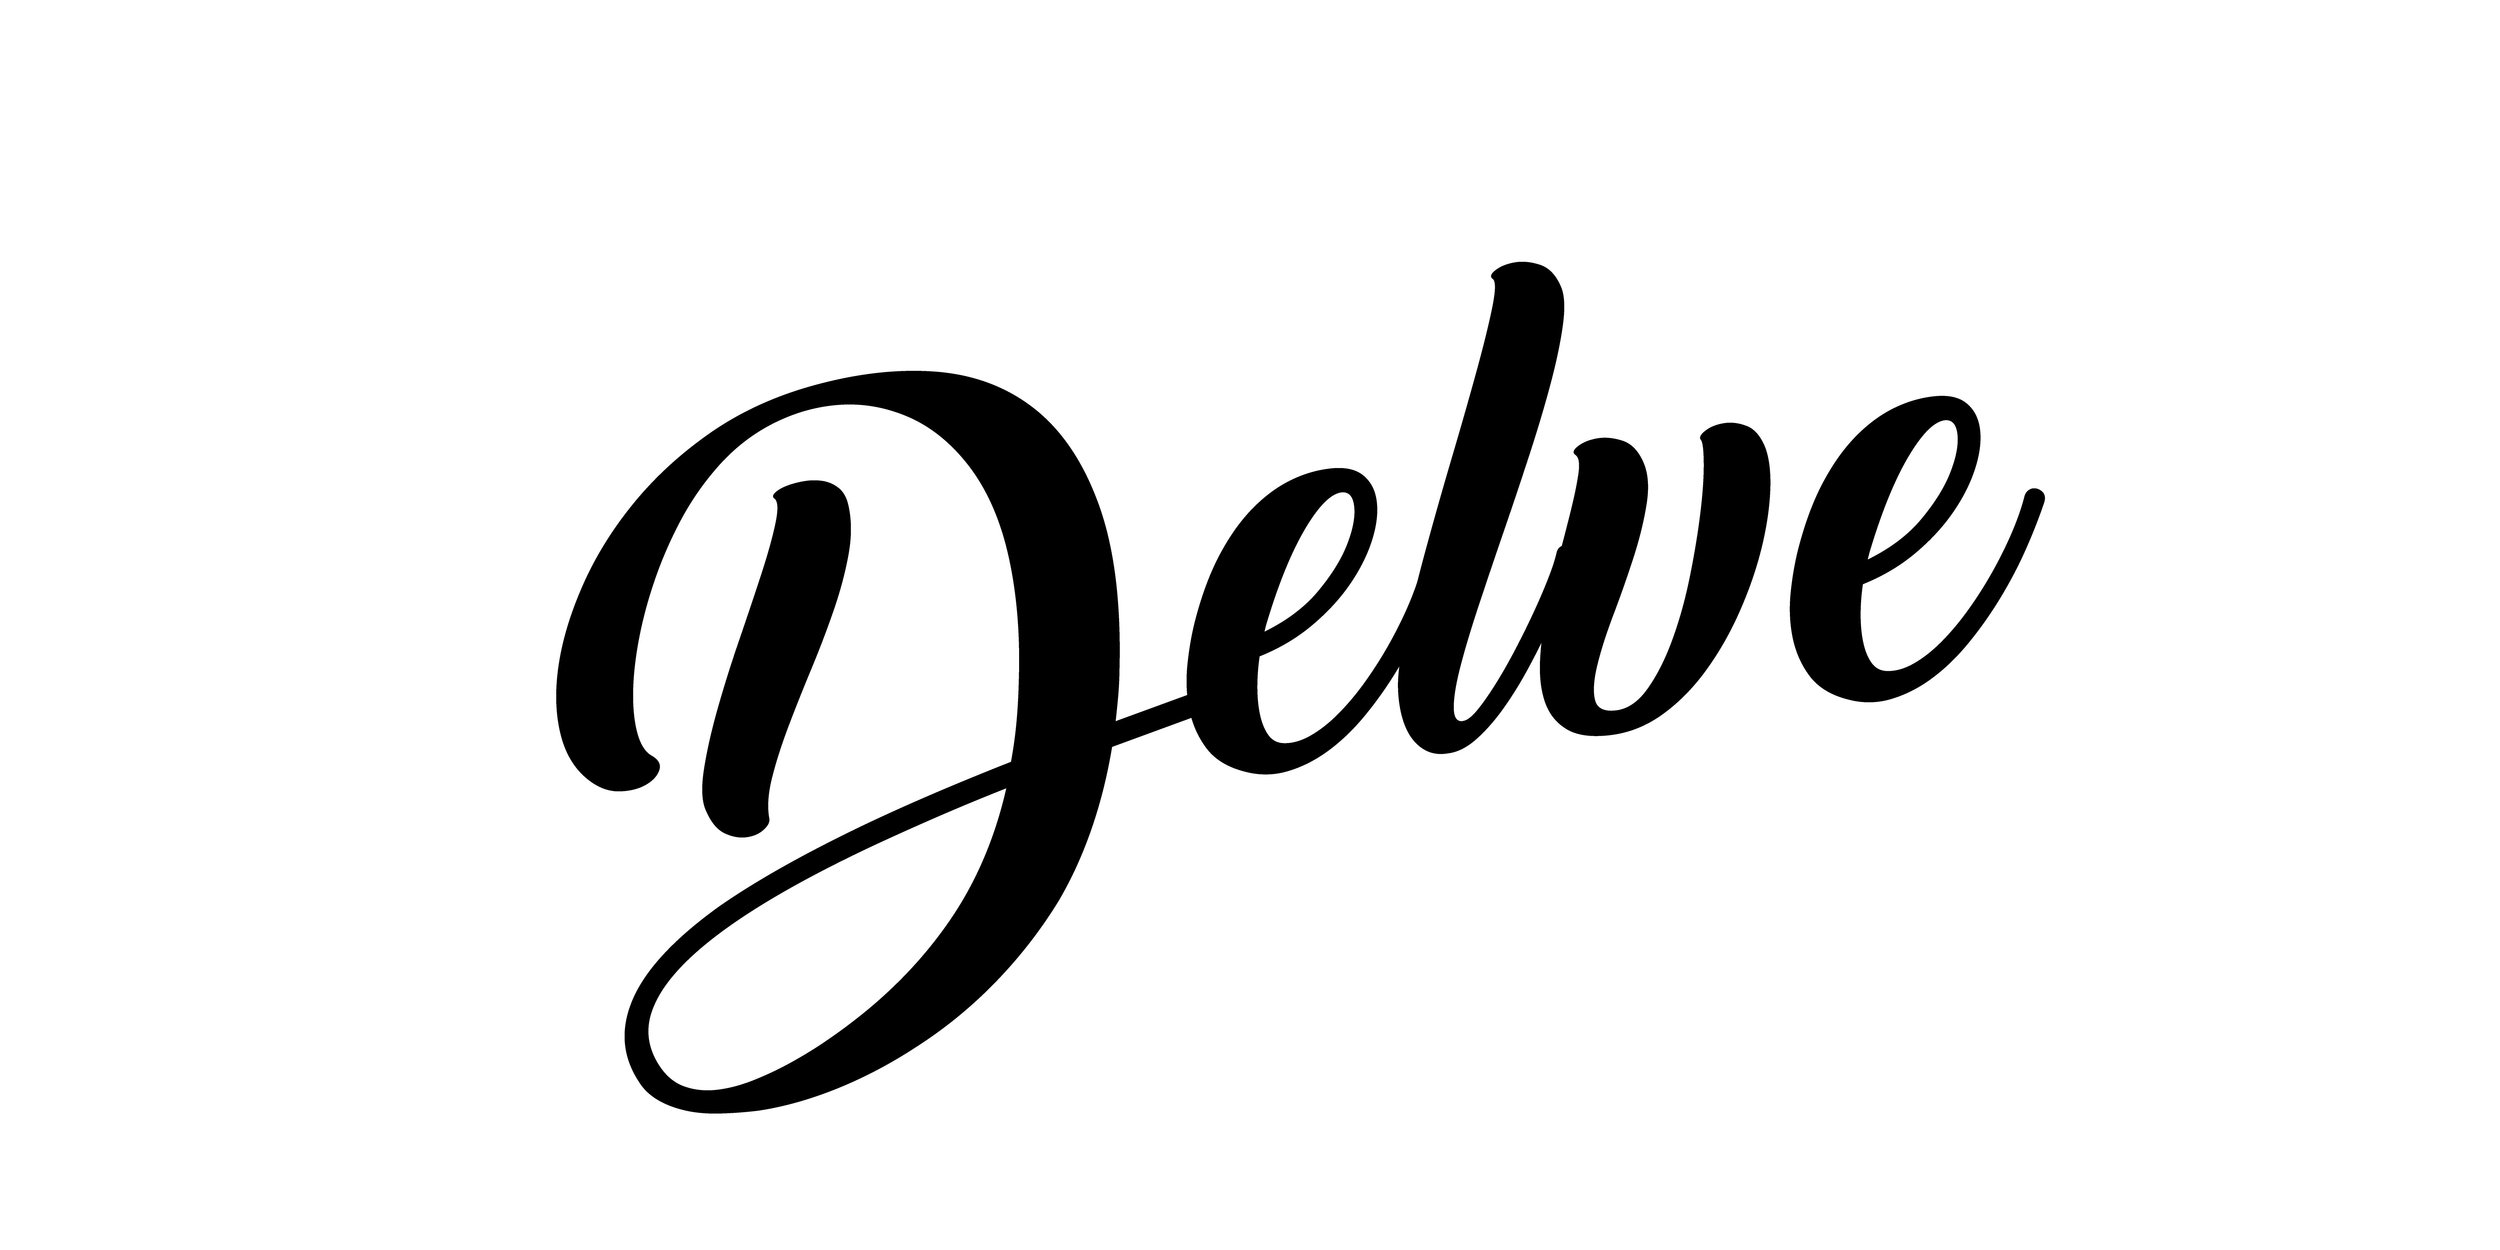 Delve MFG - Delve MFG is inspired by humour, music and the oddities of being human, all convoyed through quality embroidered garments and limited pieces. IG: @delvemfg